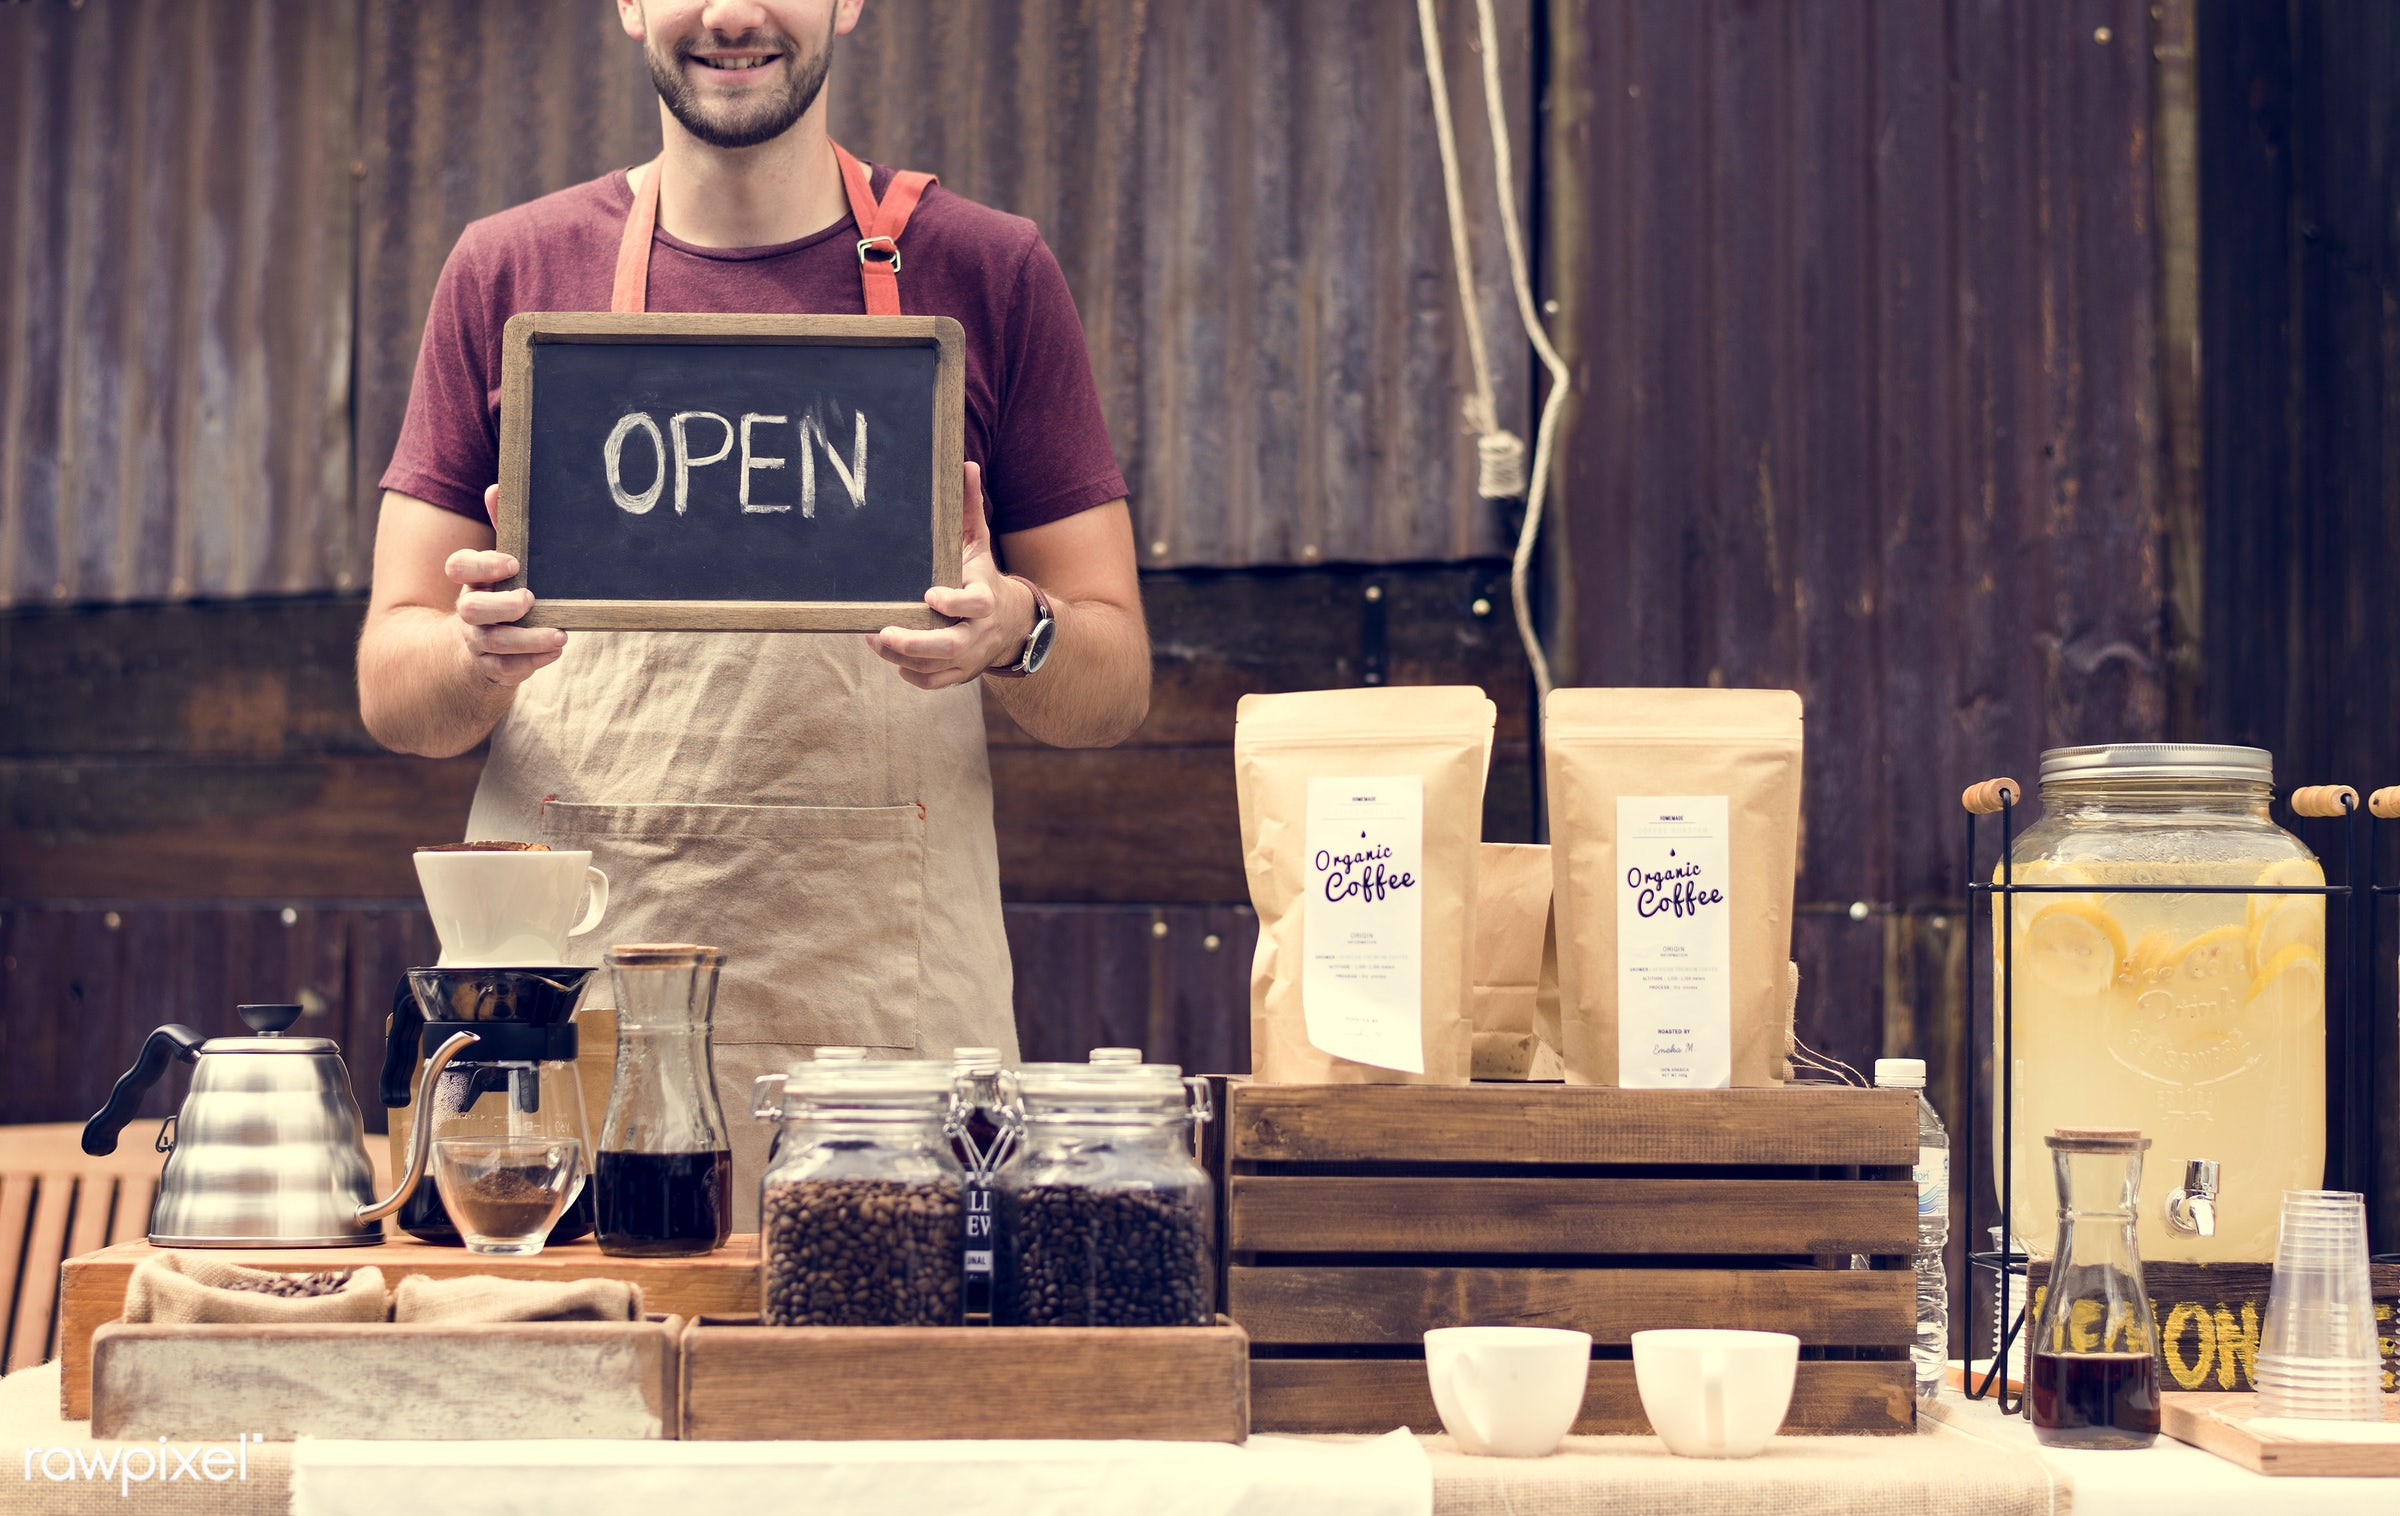 shop, store, stall, drinking, diverse, bonding, homemade, party, people, friends, smiling, wine, coffee, season, fun, health...